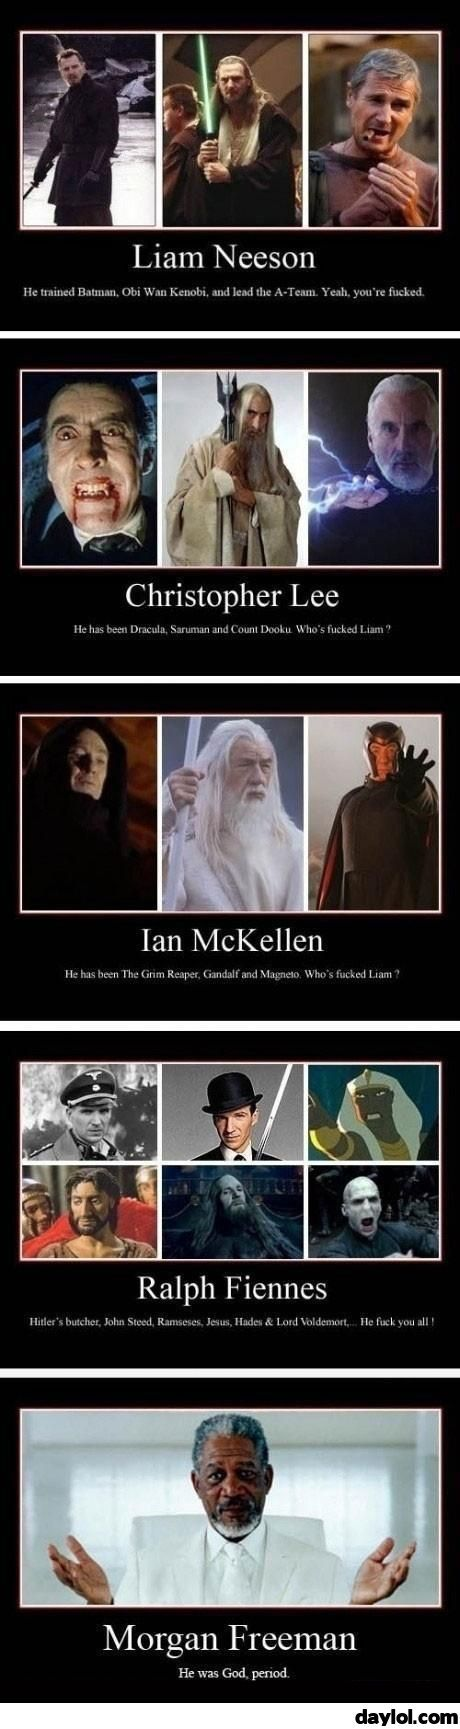 There can be only one badass in Hollywood - DayLoL.com - Your Daily LoL!